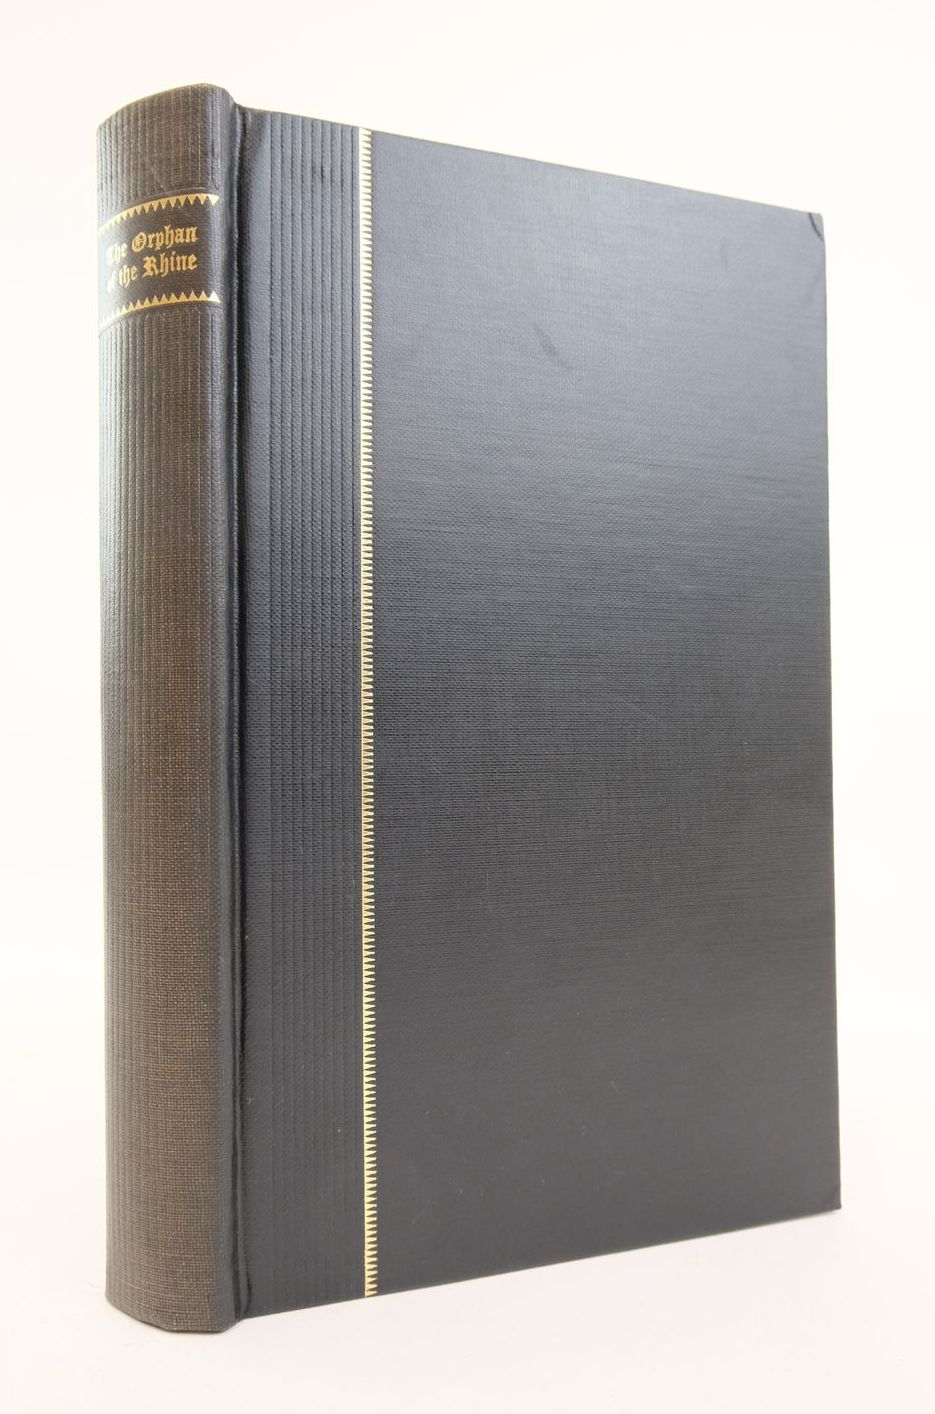 Photo of THE ORPHAN OF THE RHINE written by Sleath, Eleanor published by Folio Society (STOCK CODE: 1821634)  for sale by Stella & Rose's Books